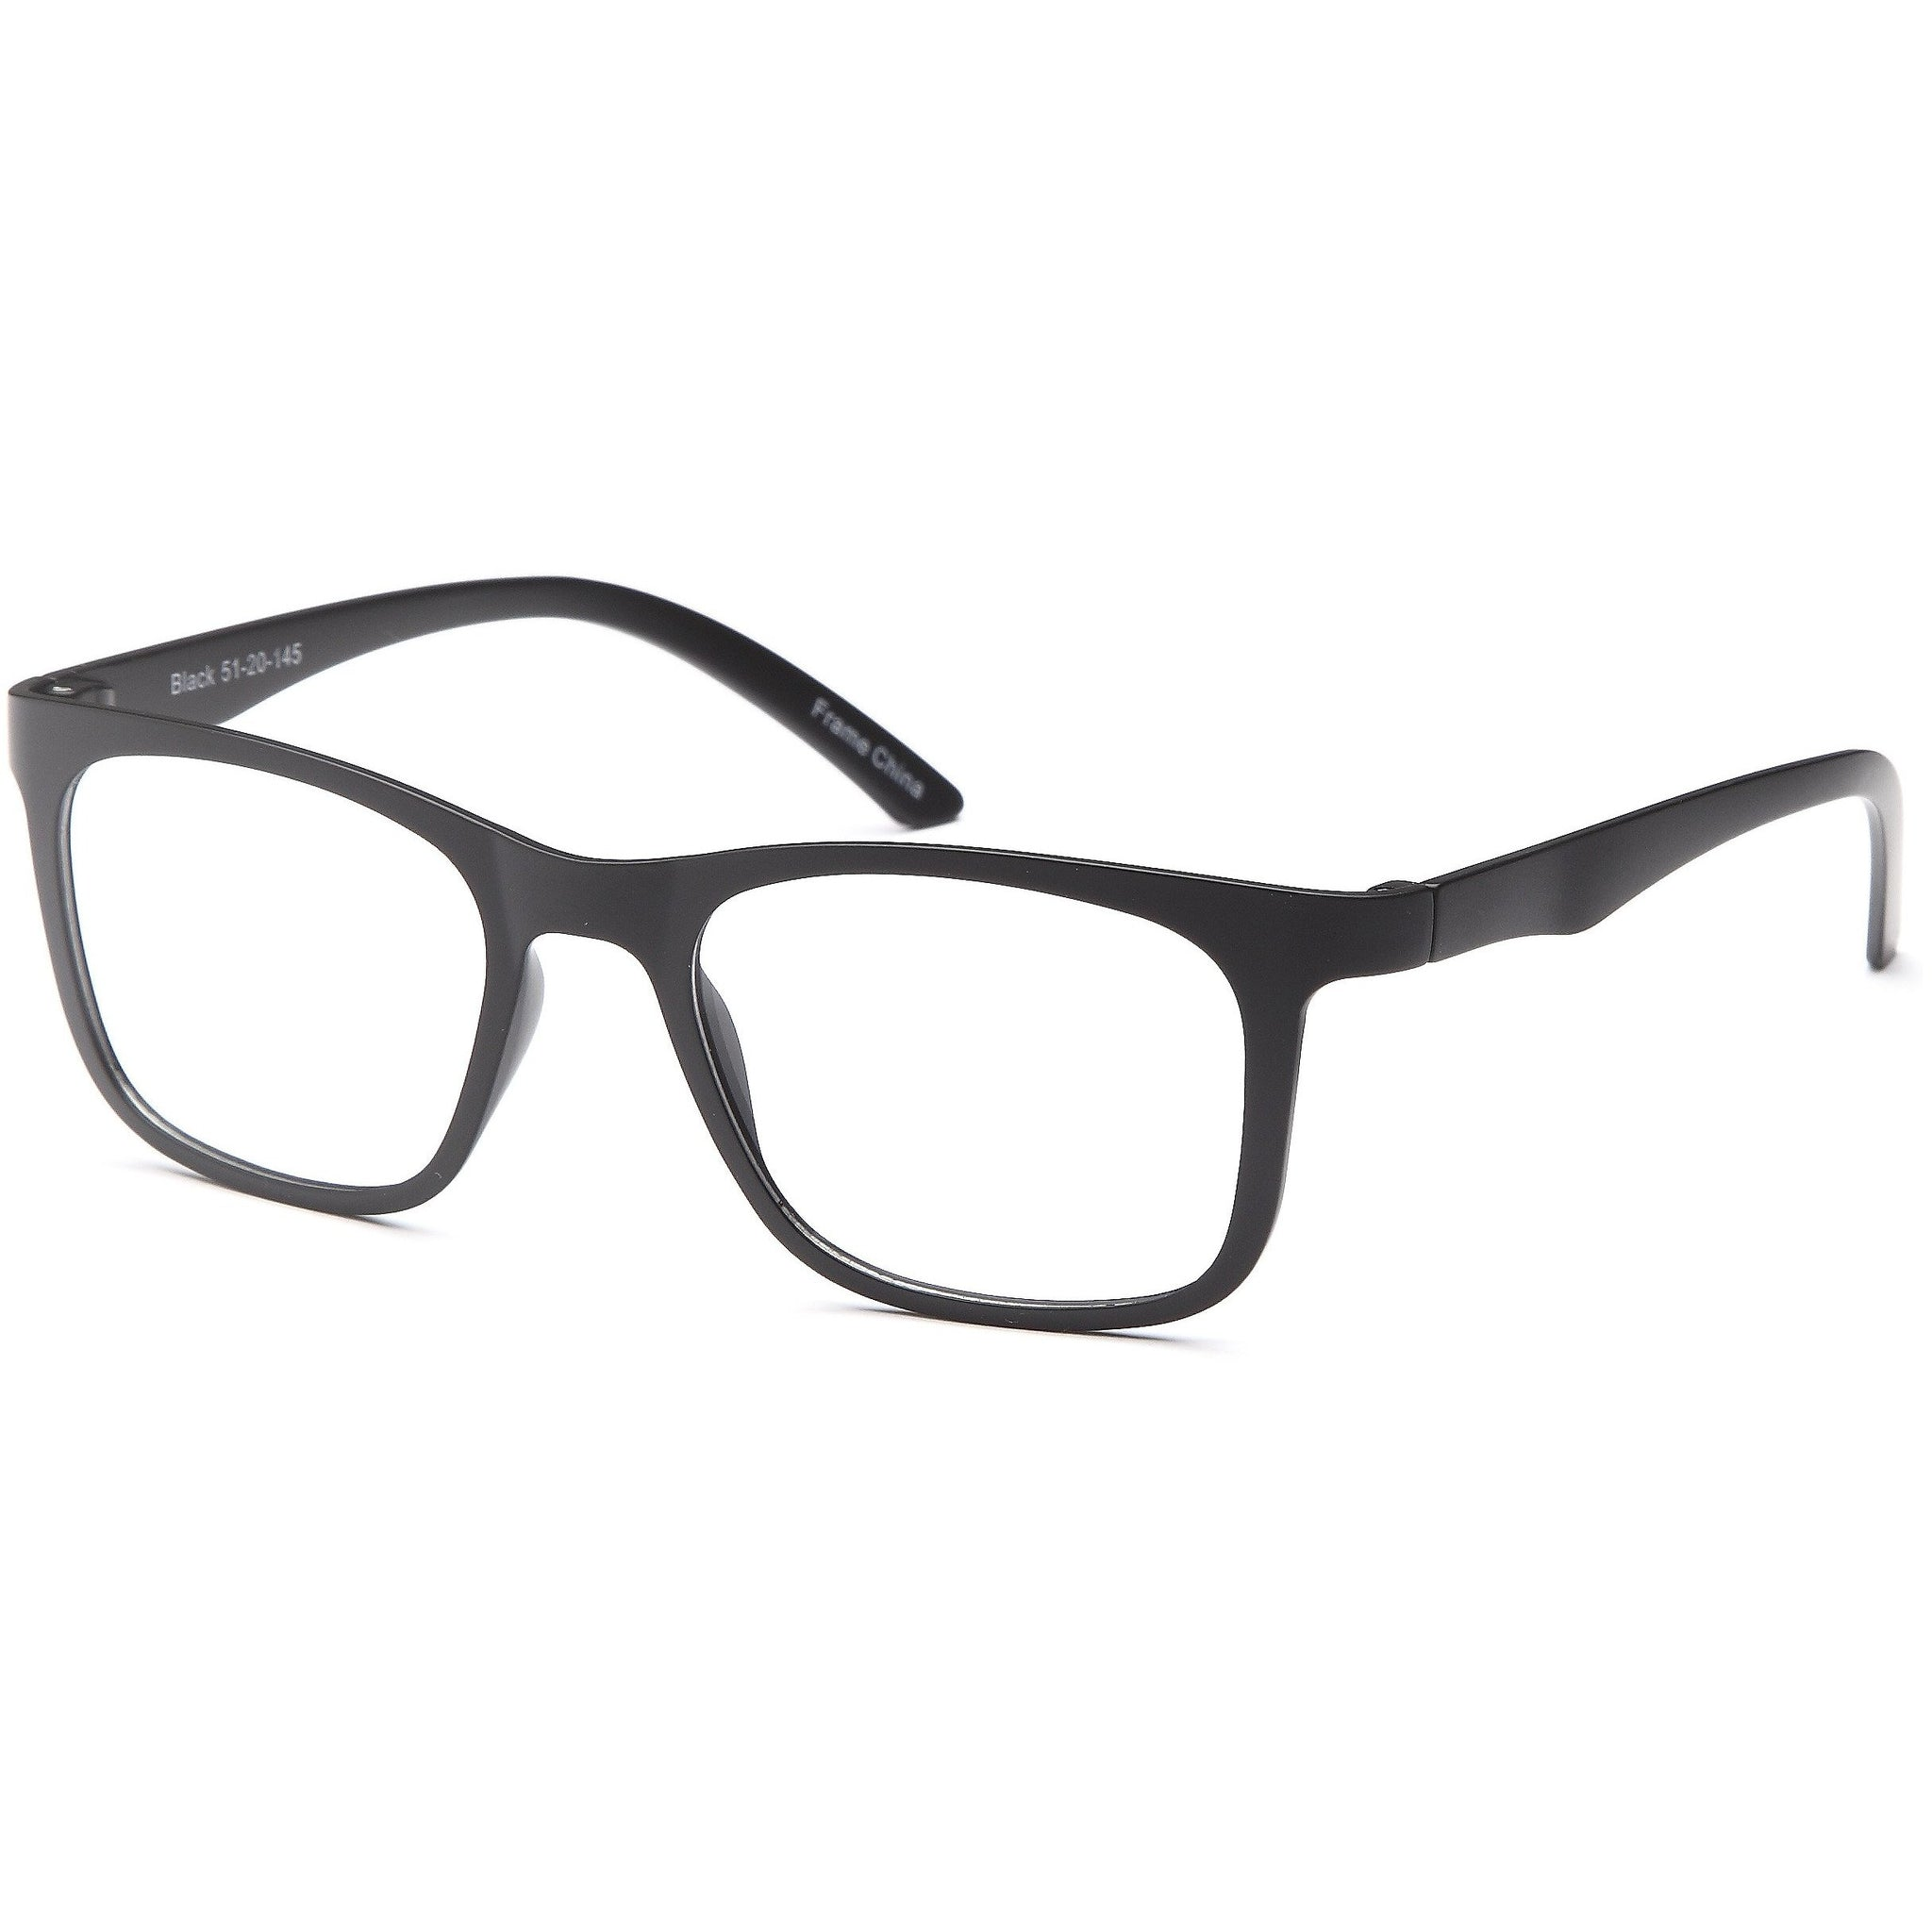 GEN Y Prescription Glasses SPLIT B Eyeglasses Frame